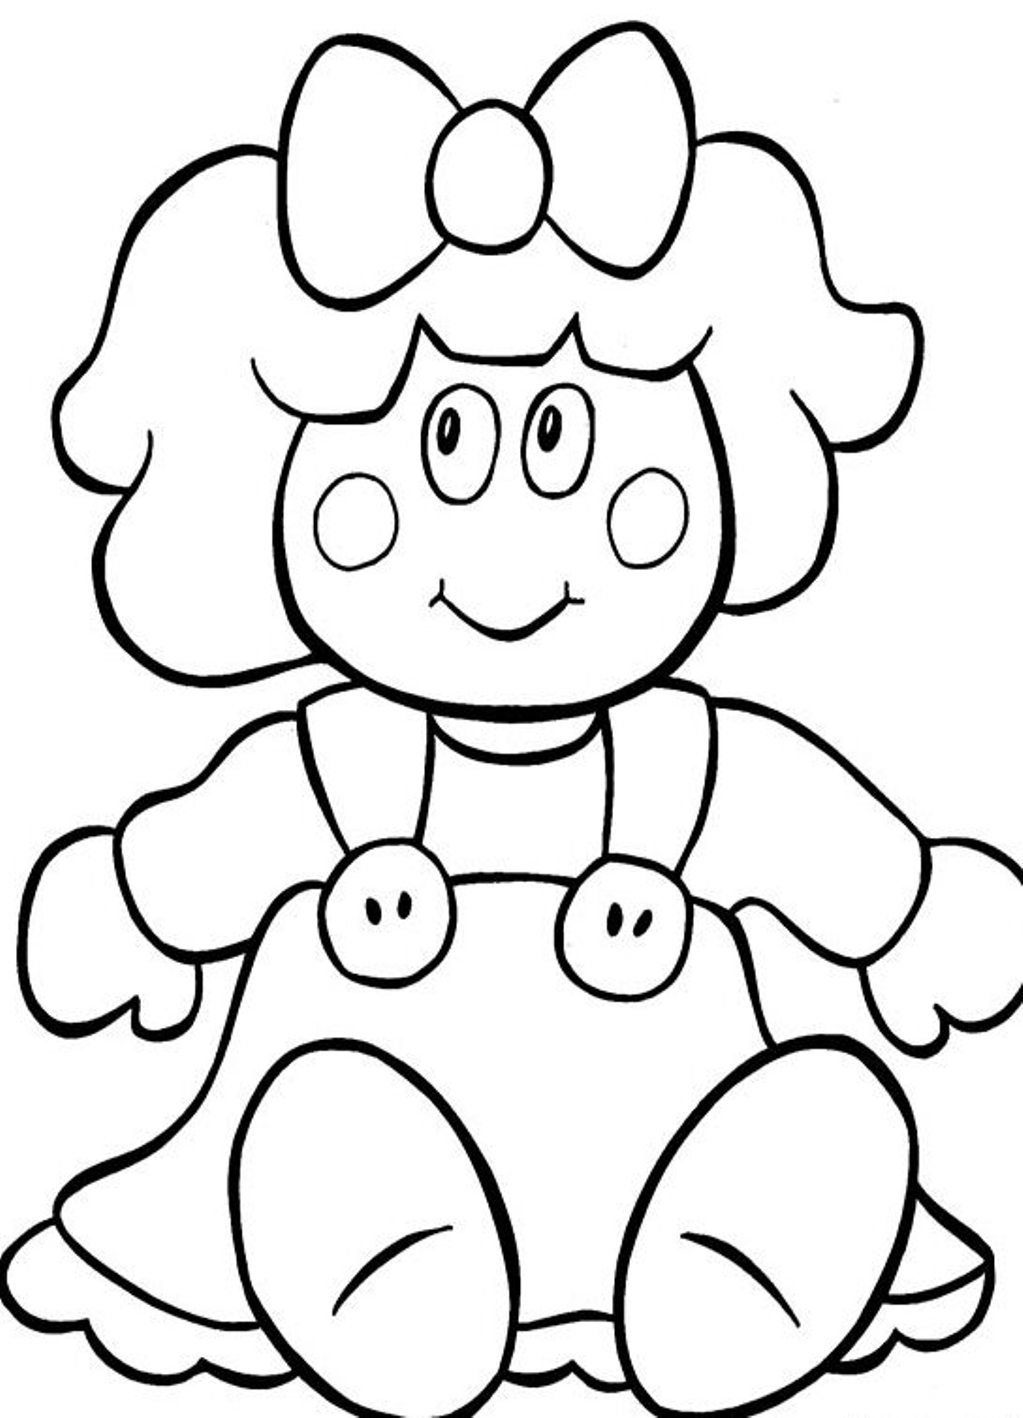 Dolls colouring pages